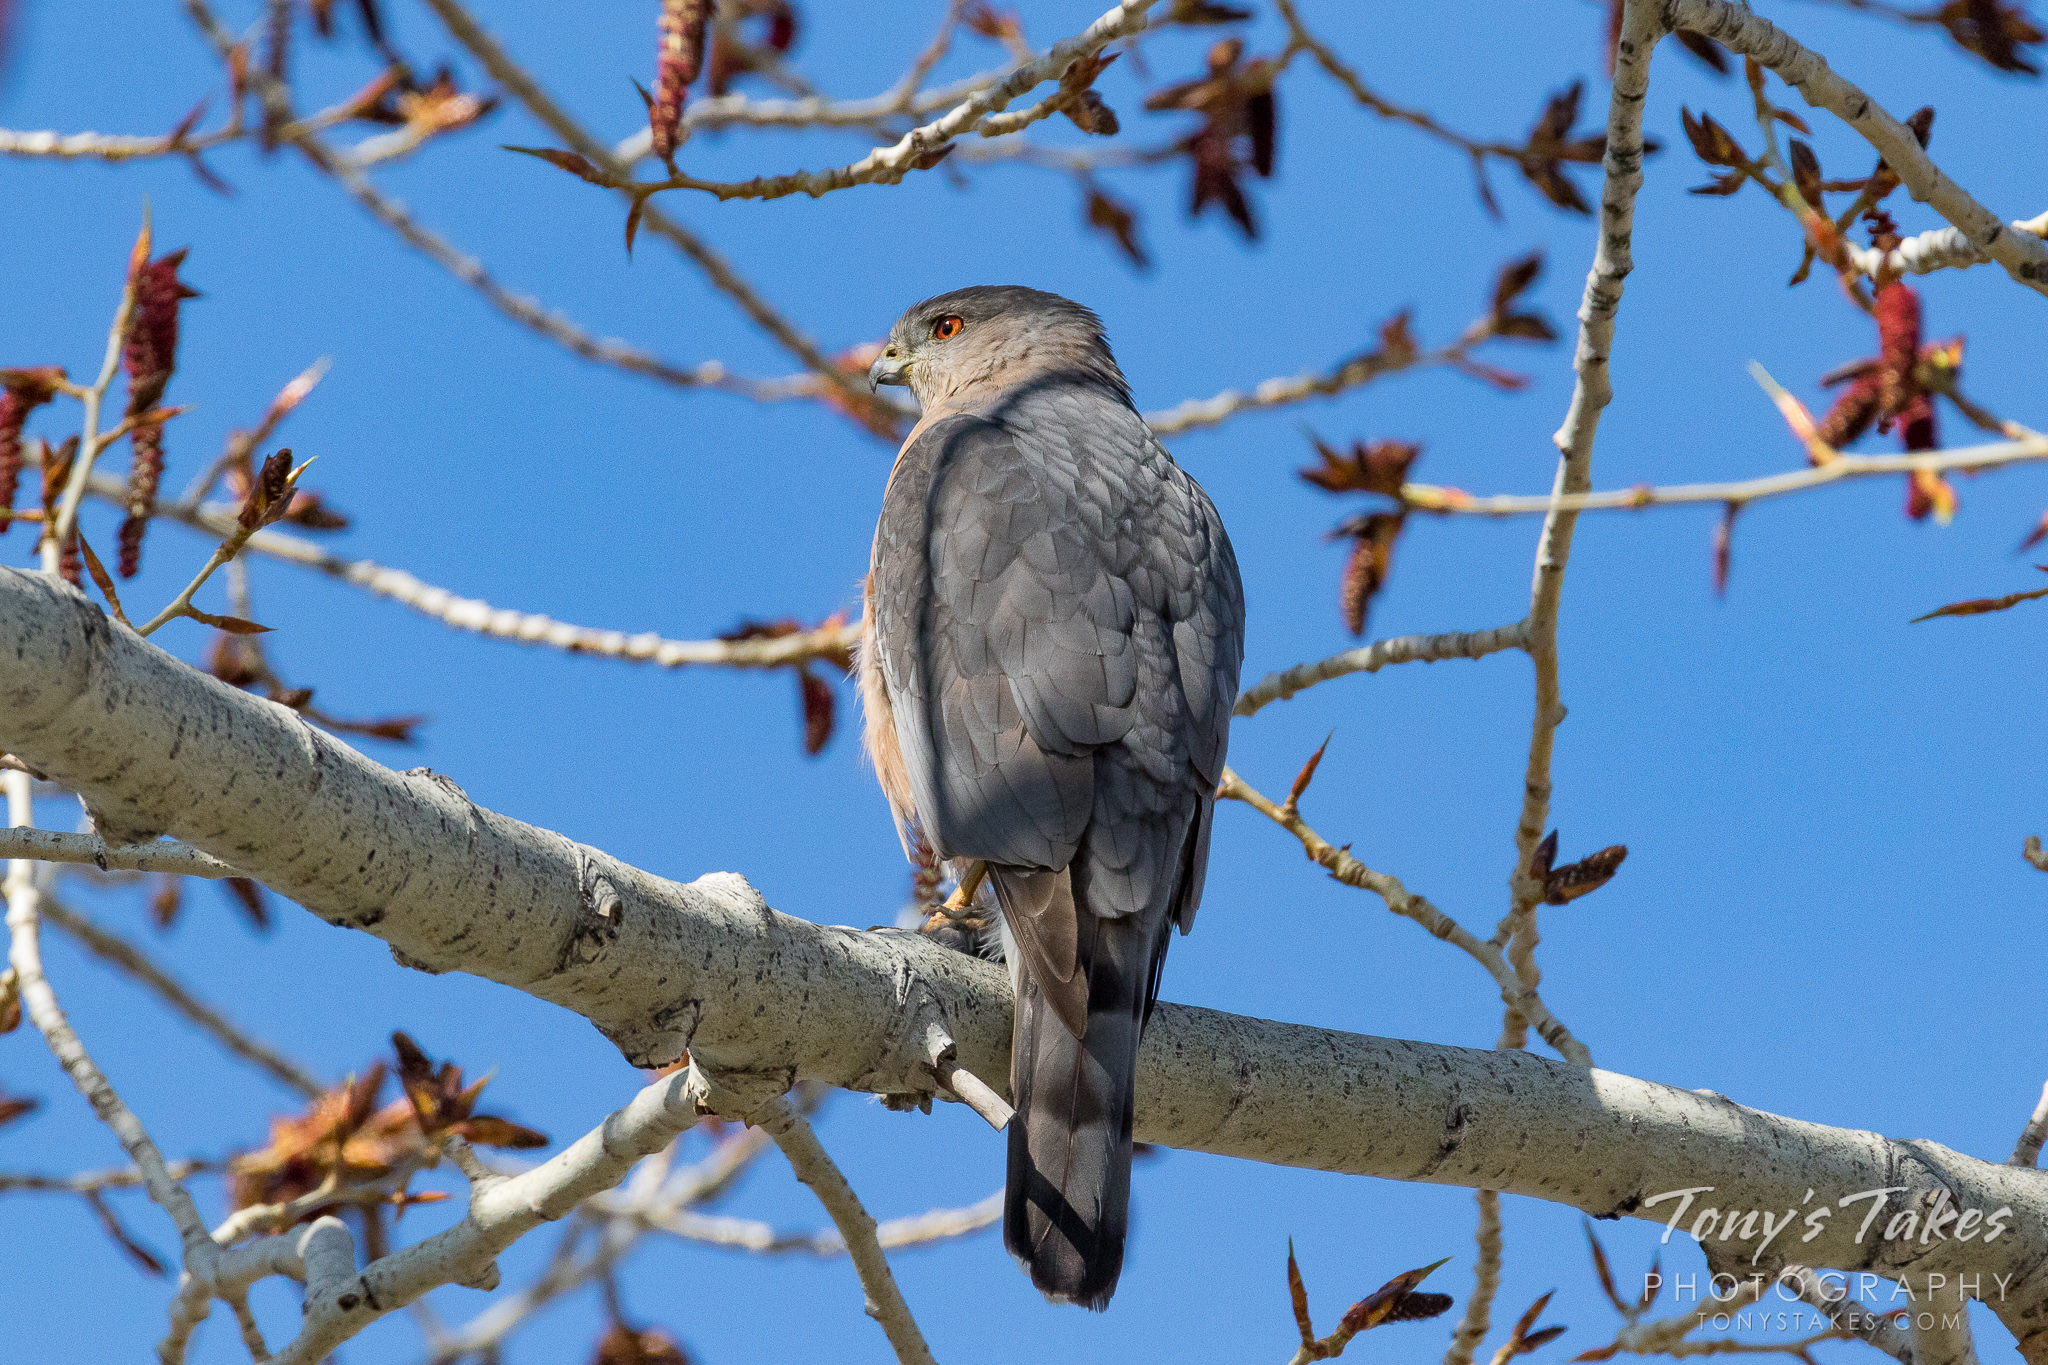 Cooper's Hawk keeping close watch. These are some of the coolest raptors you could hope to see. Their…